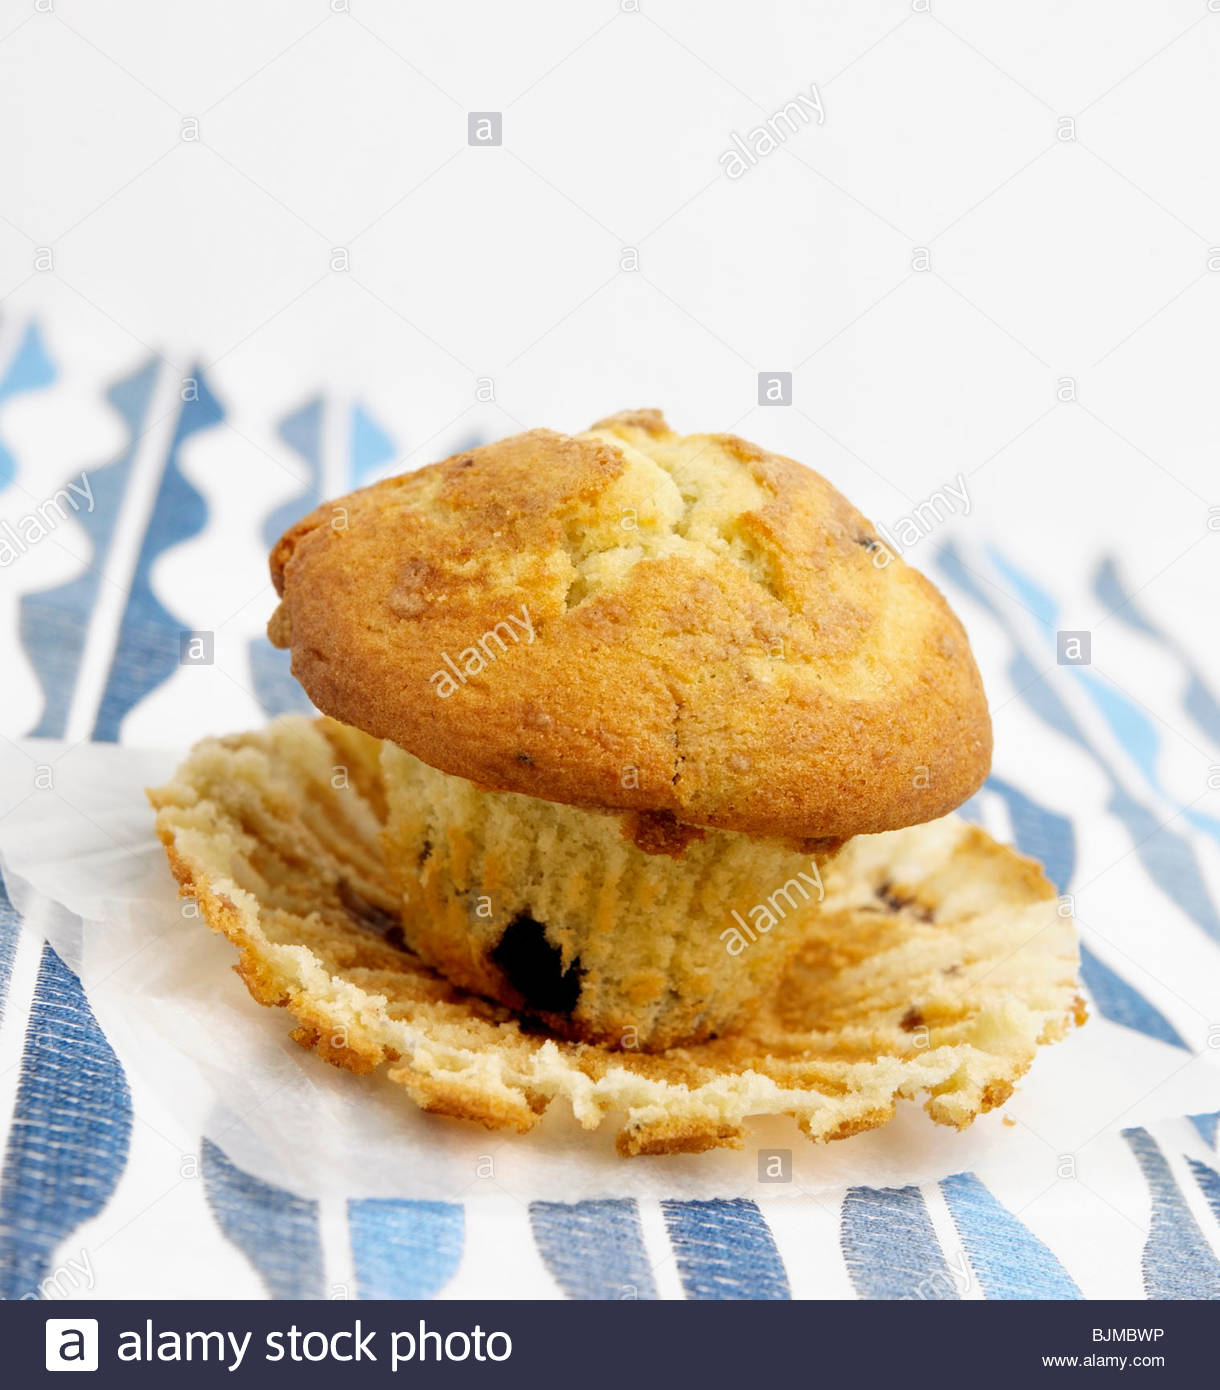 Blueberry Muffin with Liner Peeled Off - Stock Image